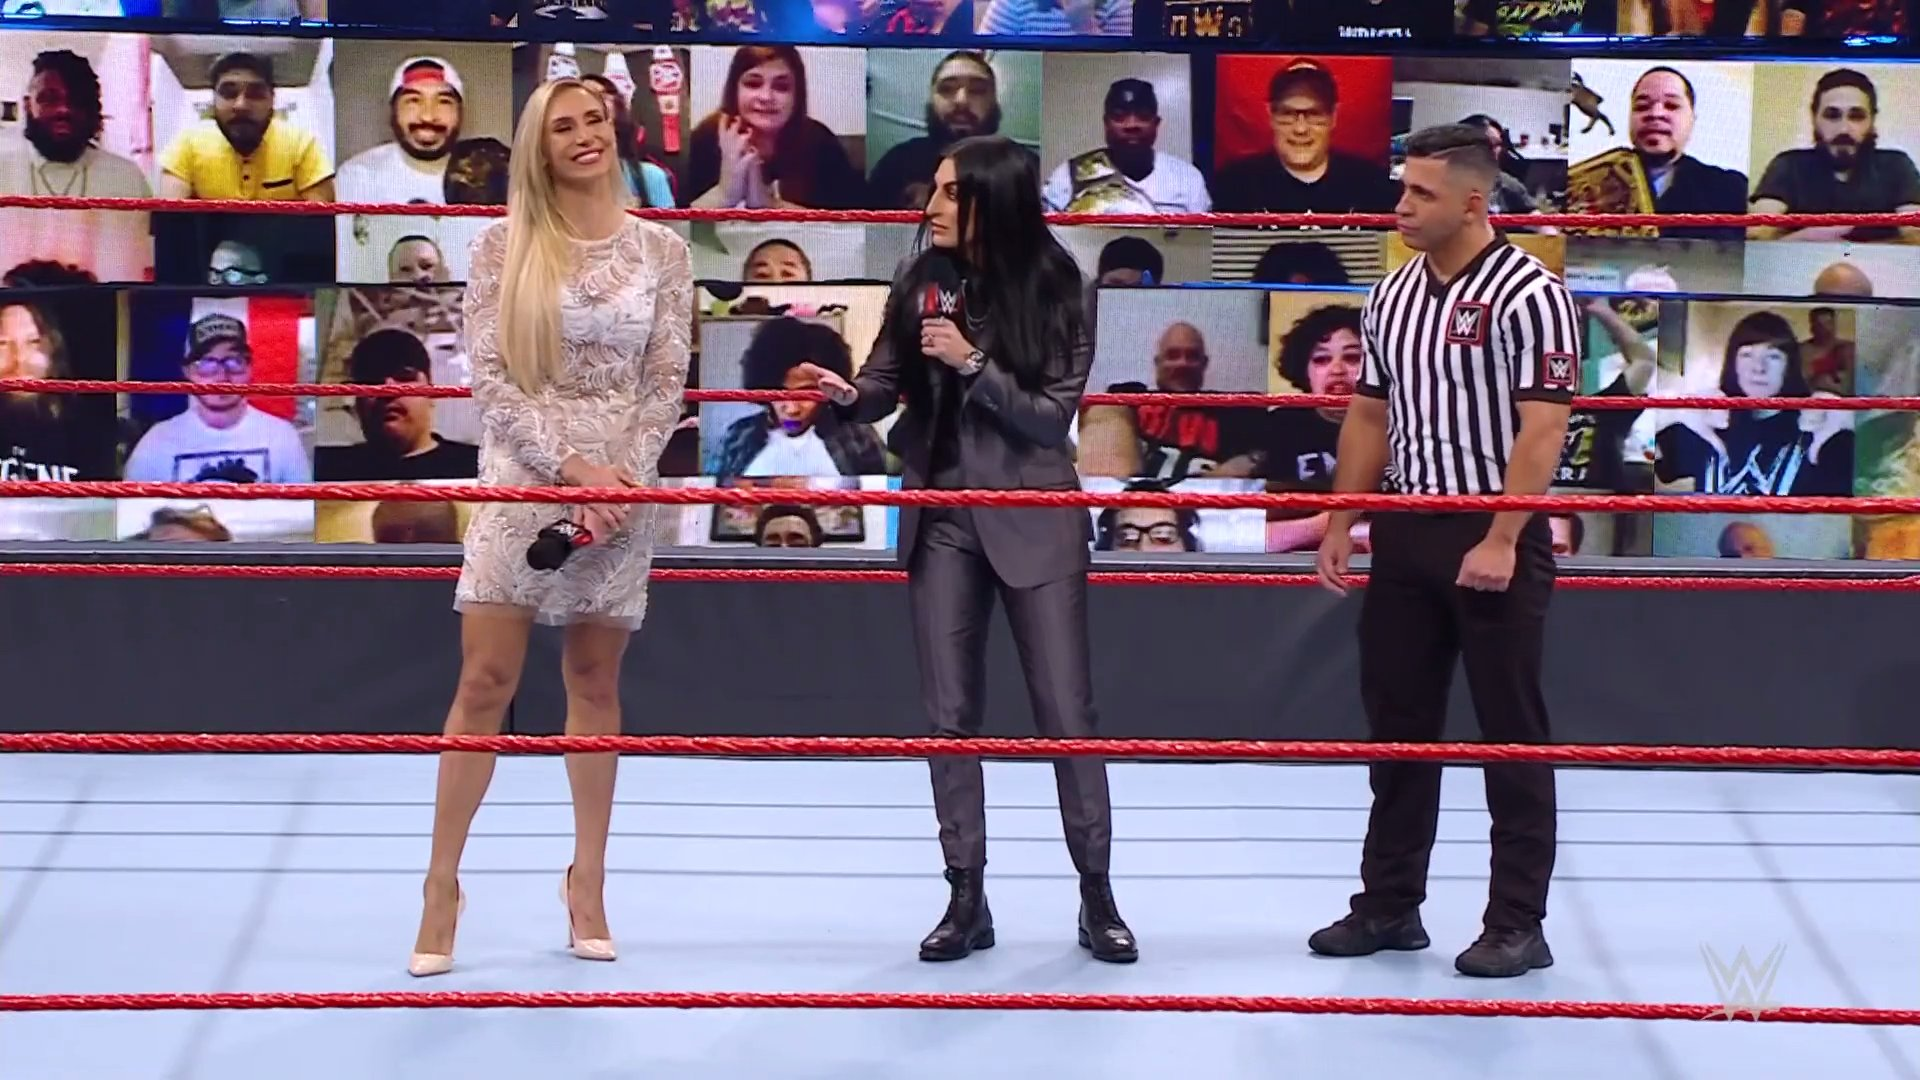 Charlotte Flair has her suspension lifted by Sonya Deville on RAW